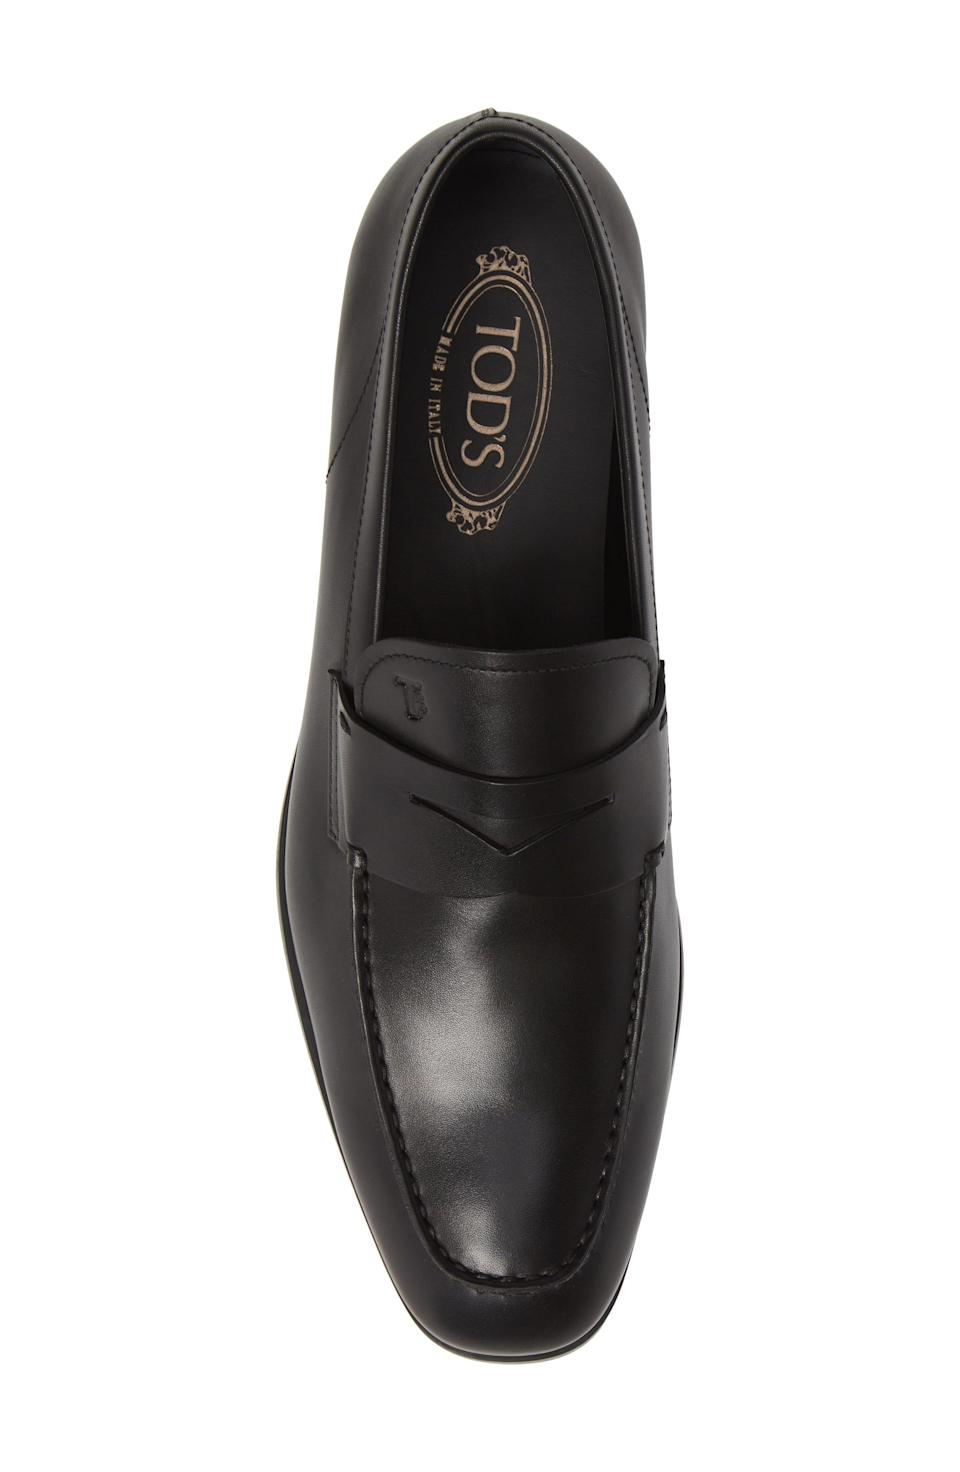 "<p><strong>TOD'S</strong></p><p>nordstrom.com</p><p><strong>$525.00</strong></p><p><a href=""https://go.redirectingat.com?id=74968X1596630&url=https%3A%2F%2Fshop.nordstrom.com%2Fs%2Ftods-mocassino-penny-loafer-men%2F3916249&sref=https%3A%2F%2Fwww.harpersbazaar.com%2Ffashion%2Ftrends%2Fg4447%2Fluxury-gifts-for-women%2F"" rel=""nofollow noopener"" target=""_blank"" data-ylk=""slk:Shop Now"" class=""link rapid-noclick-resp"">Shop Now</a></p><p>A classic loafer for those thoughtful drives through the country. </p>"